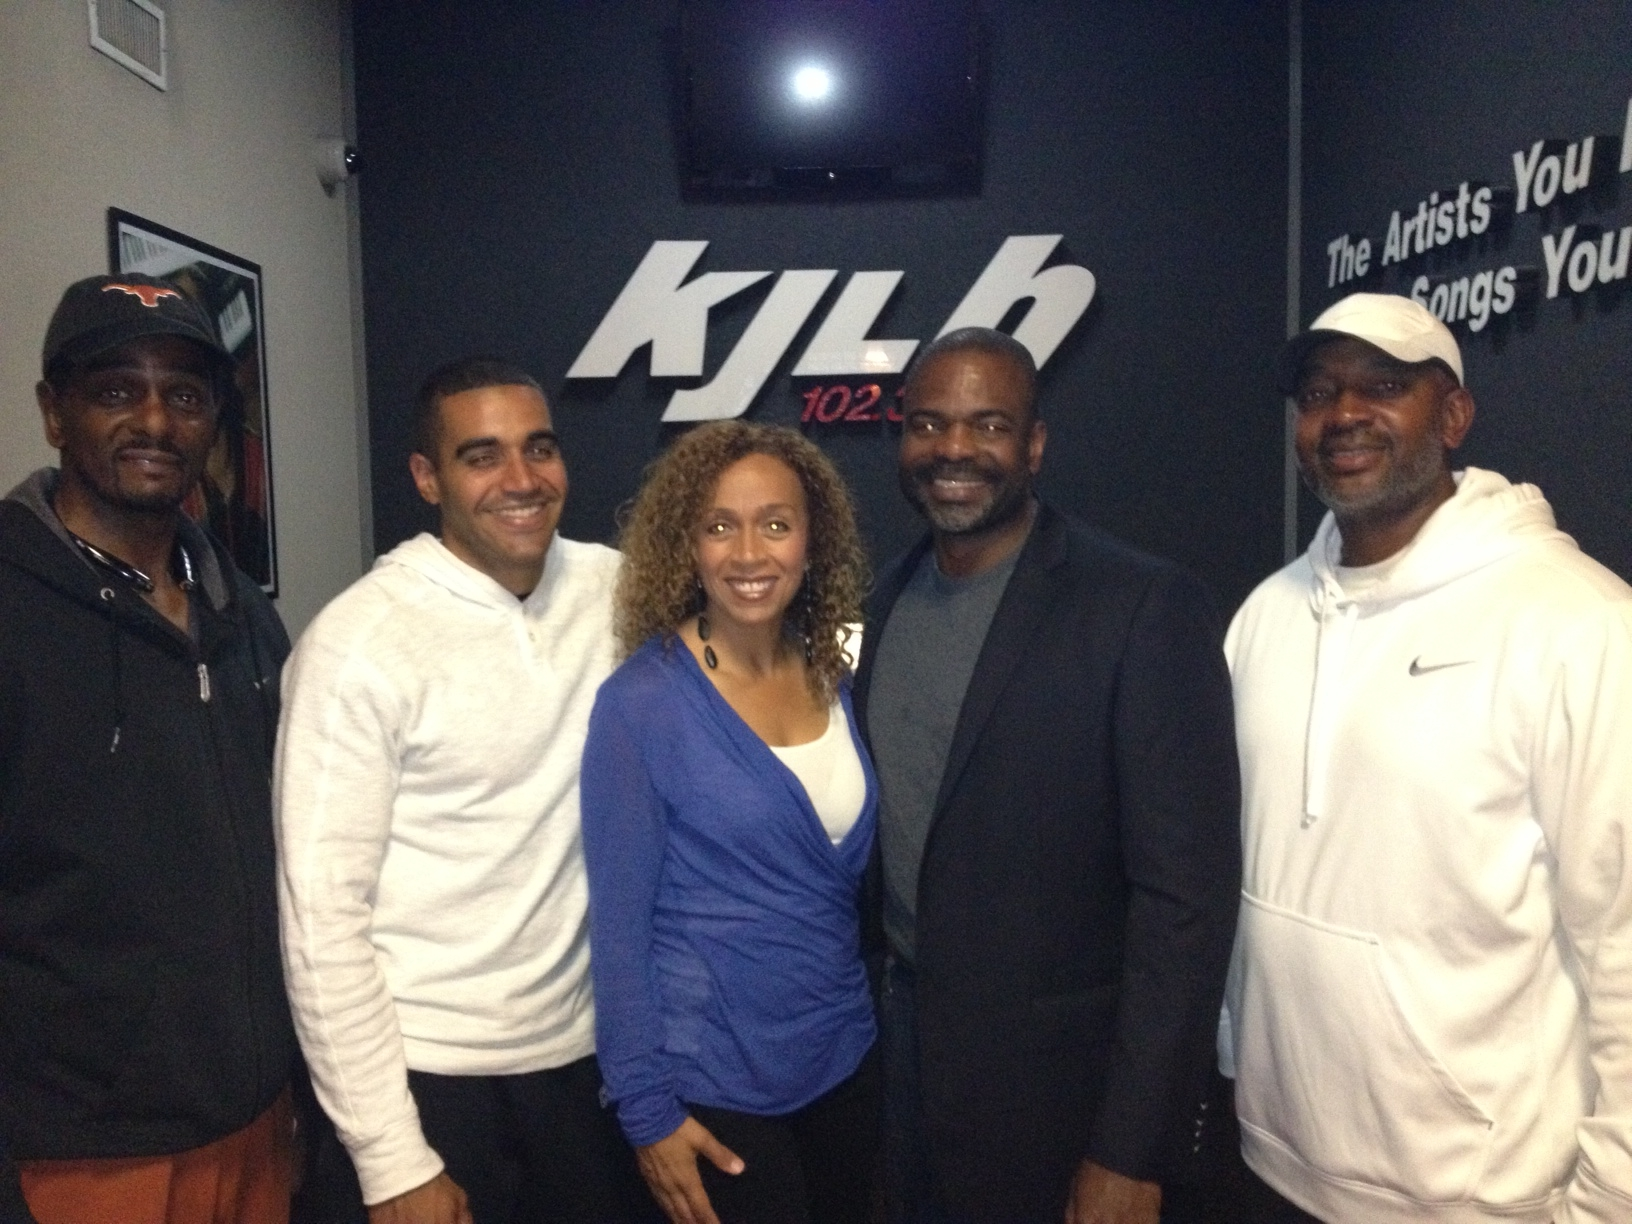 man cave men s wellness special dr bill releford special man cave edition of today s show avi bernard coach e co hosting and dominique doing the news and dr bill releford on deck as guest of the